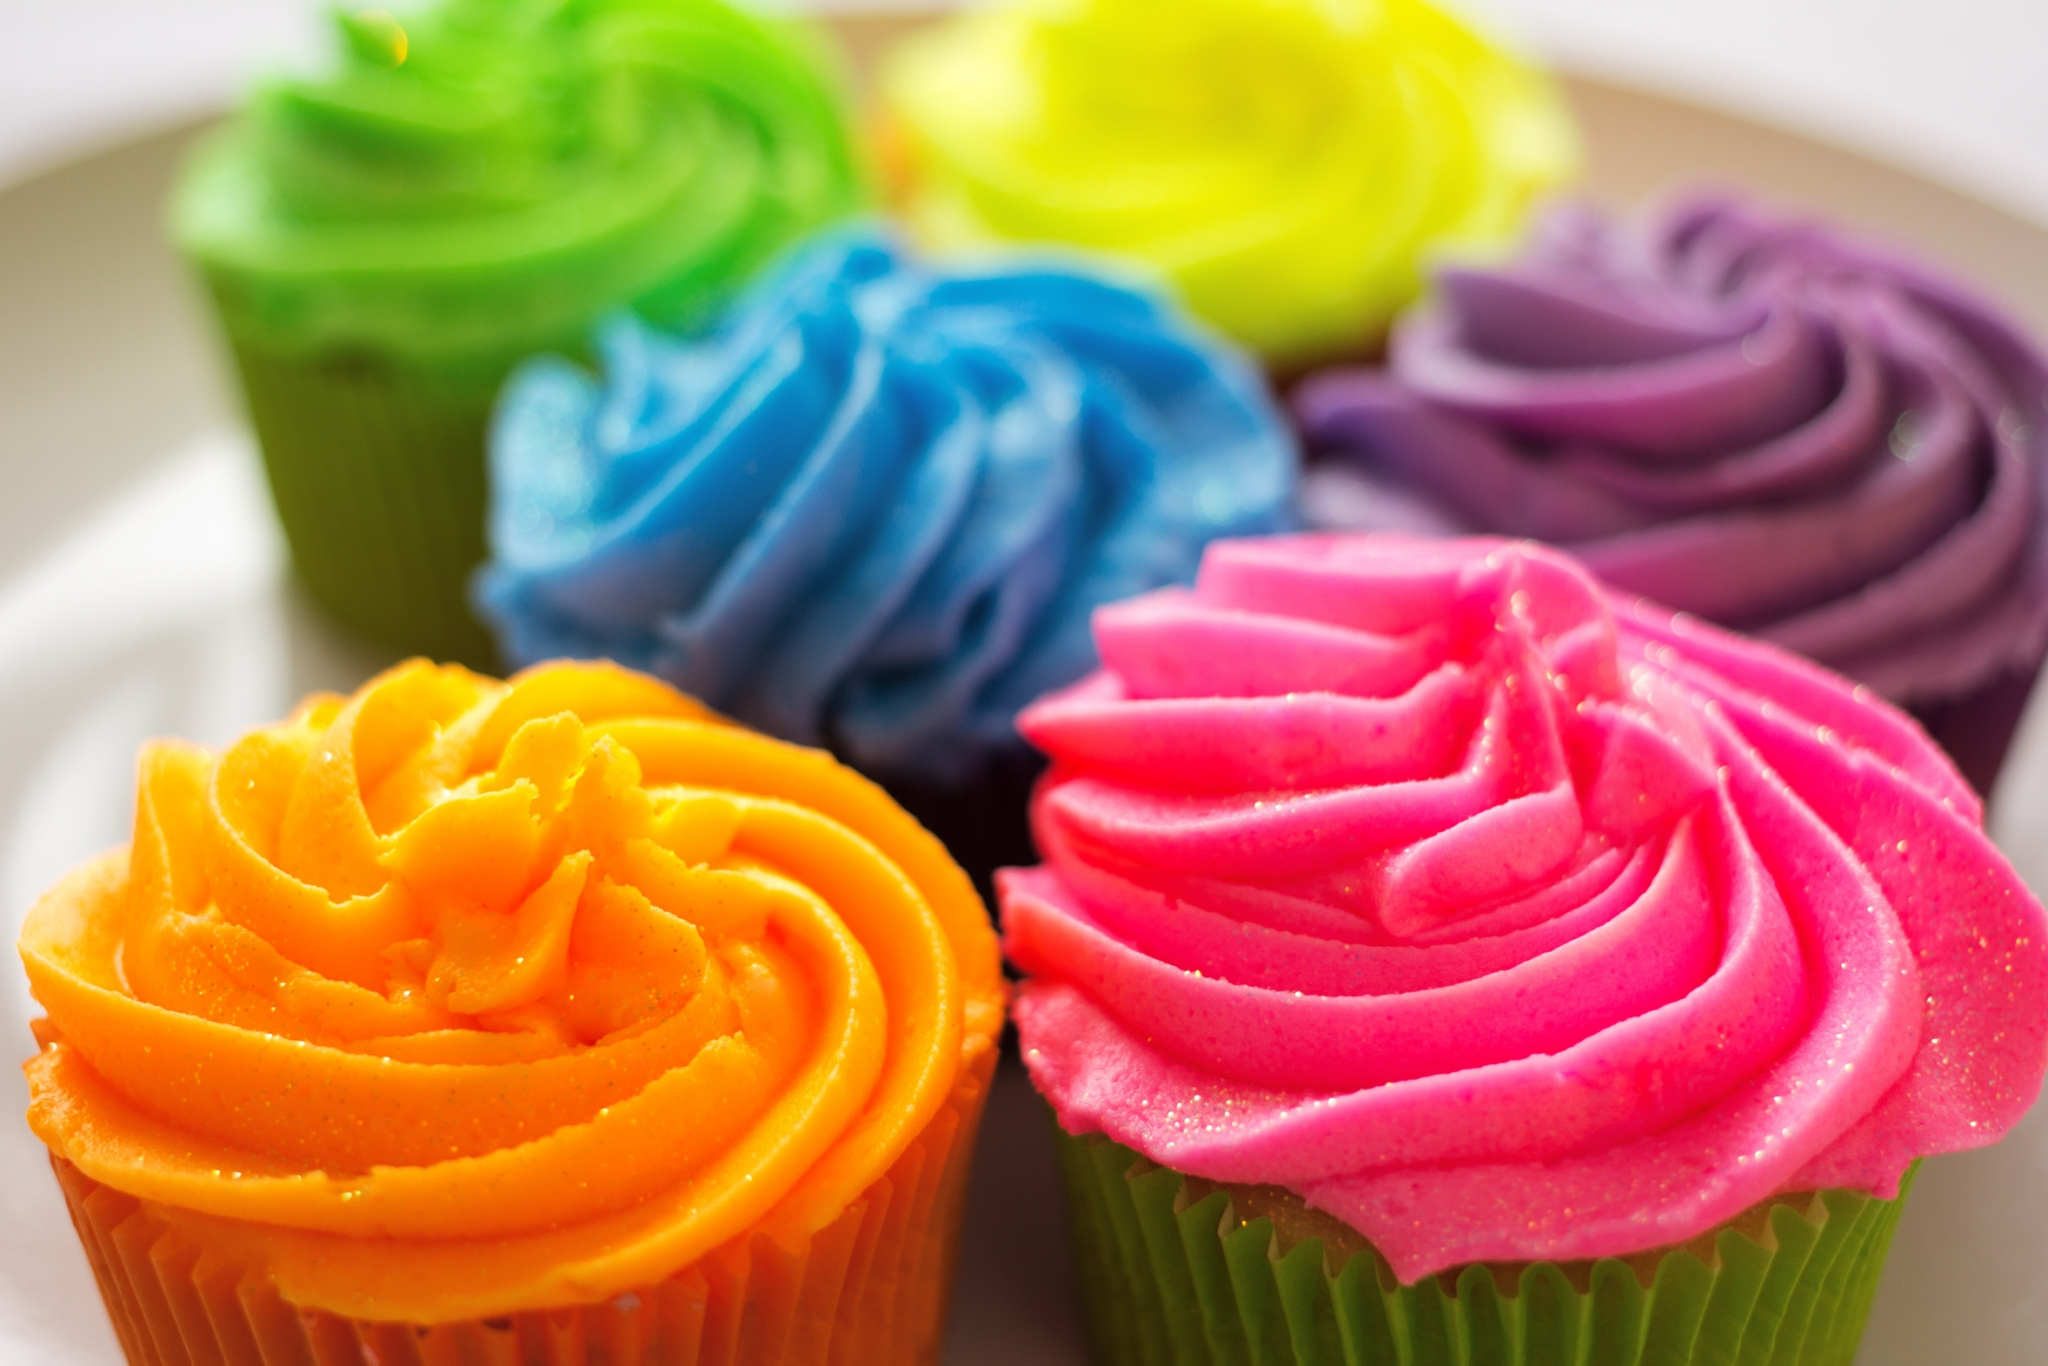 Cupcake amnesty': Nothing but empty political calories - Houston ...